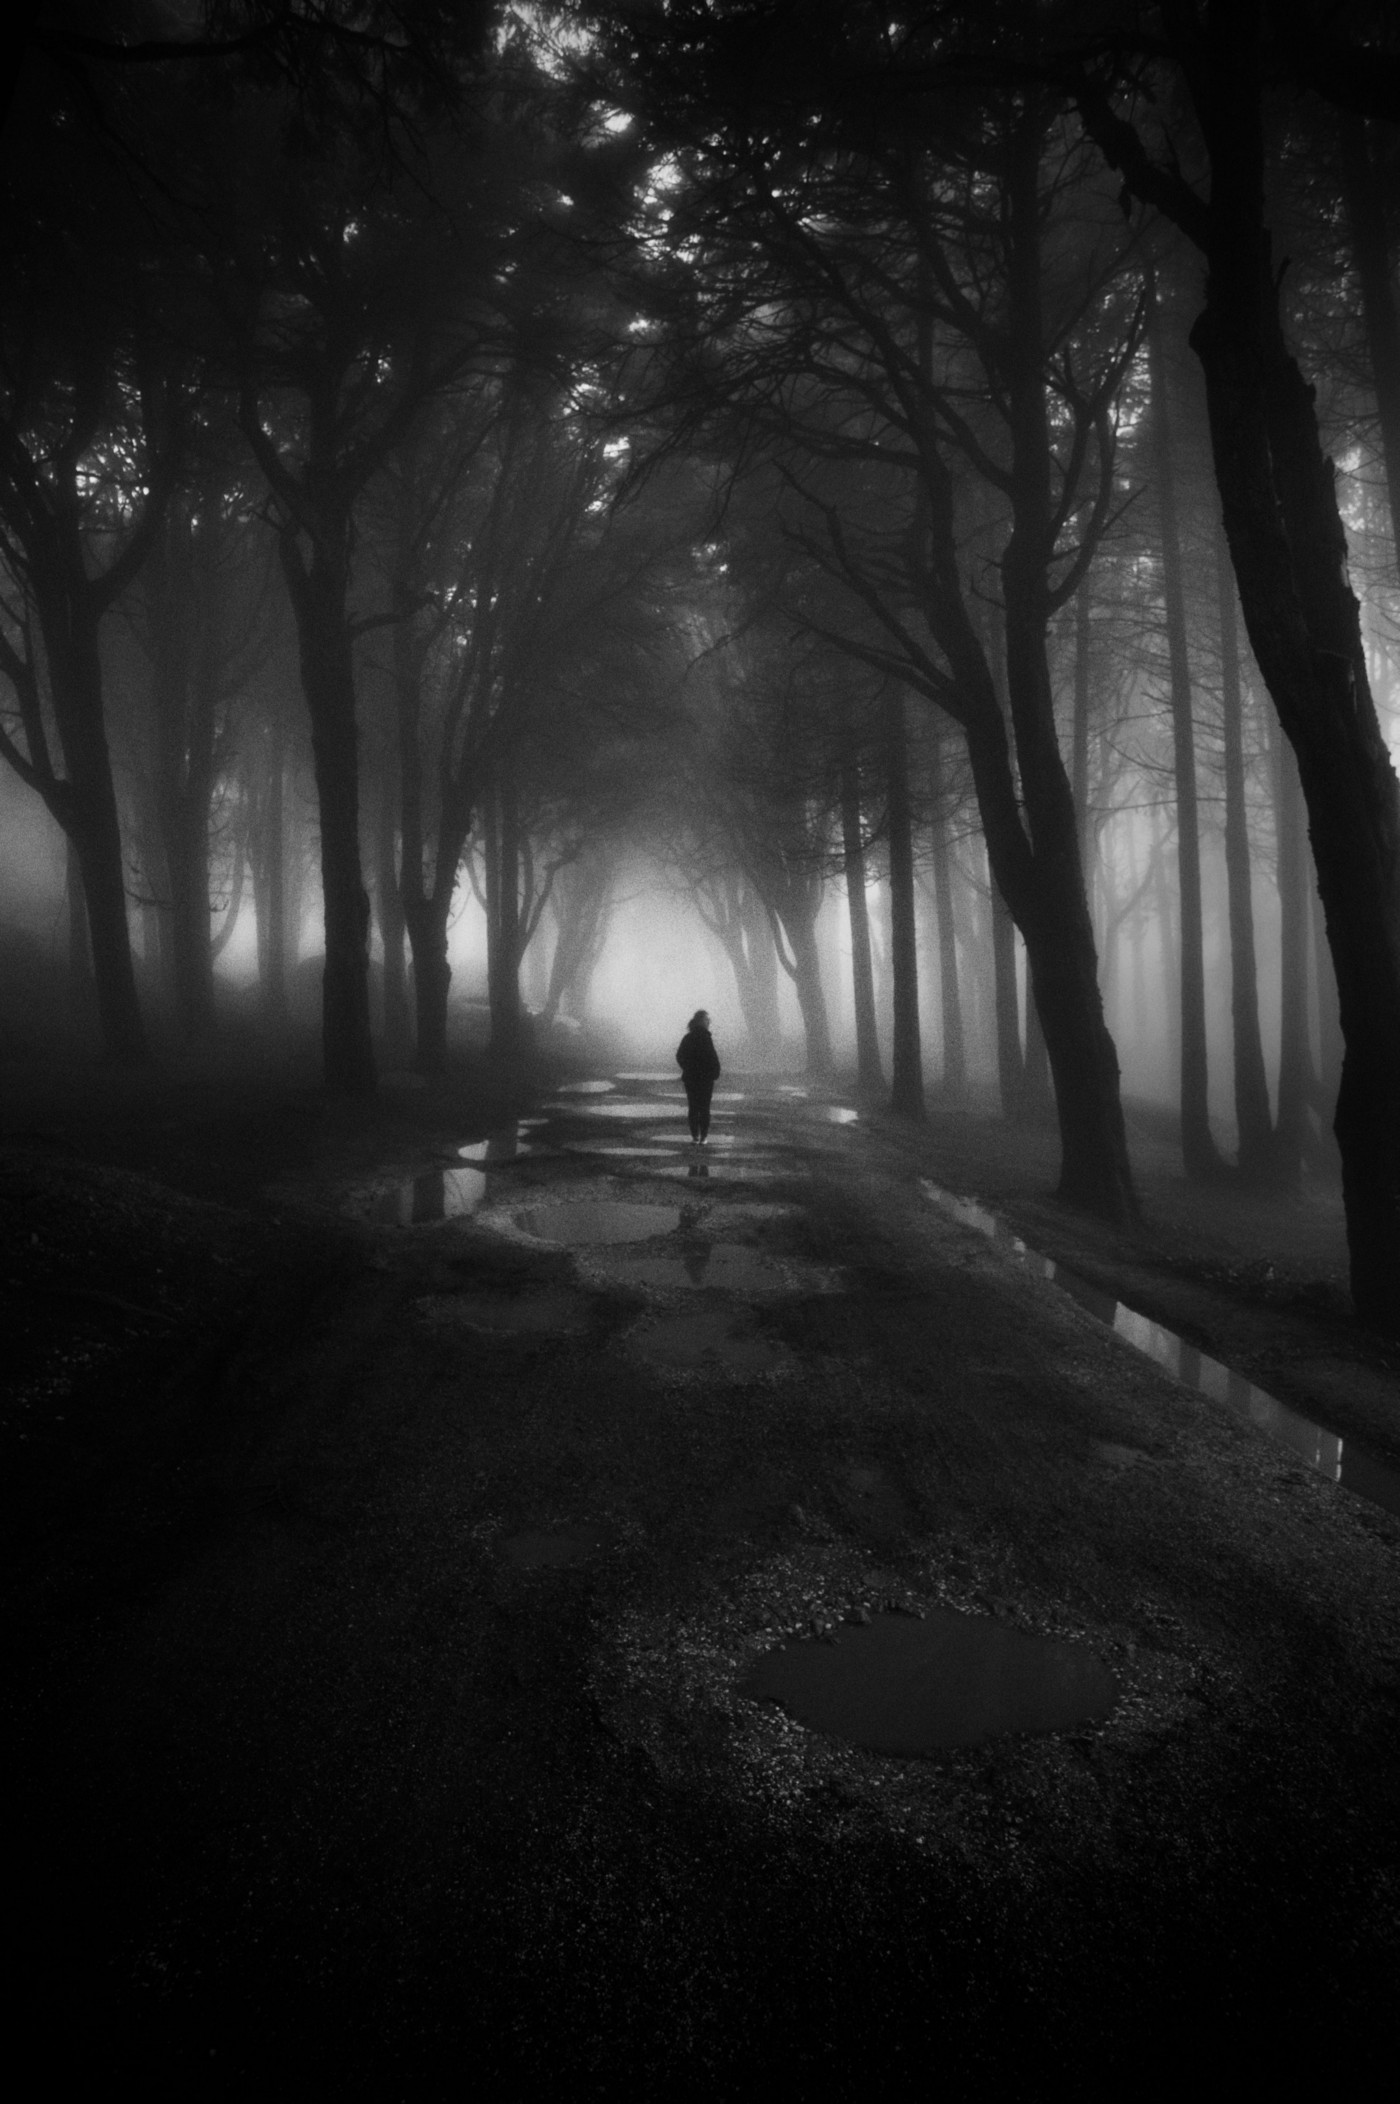 A person walks through a dark, misty forest.